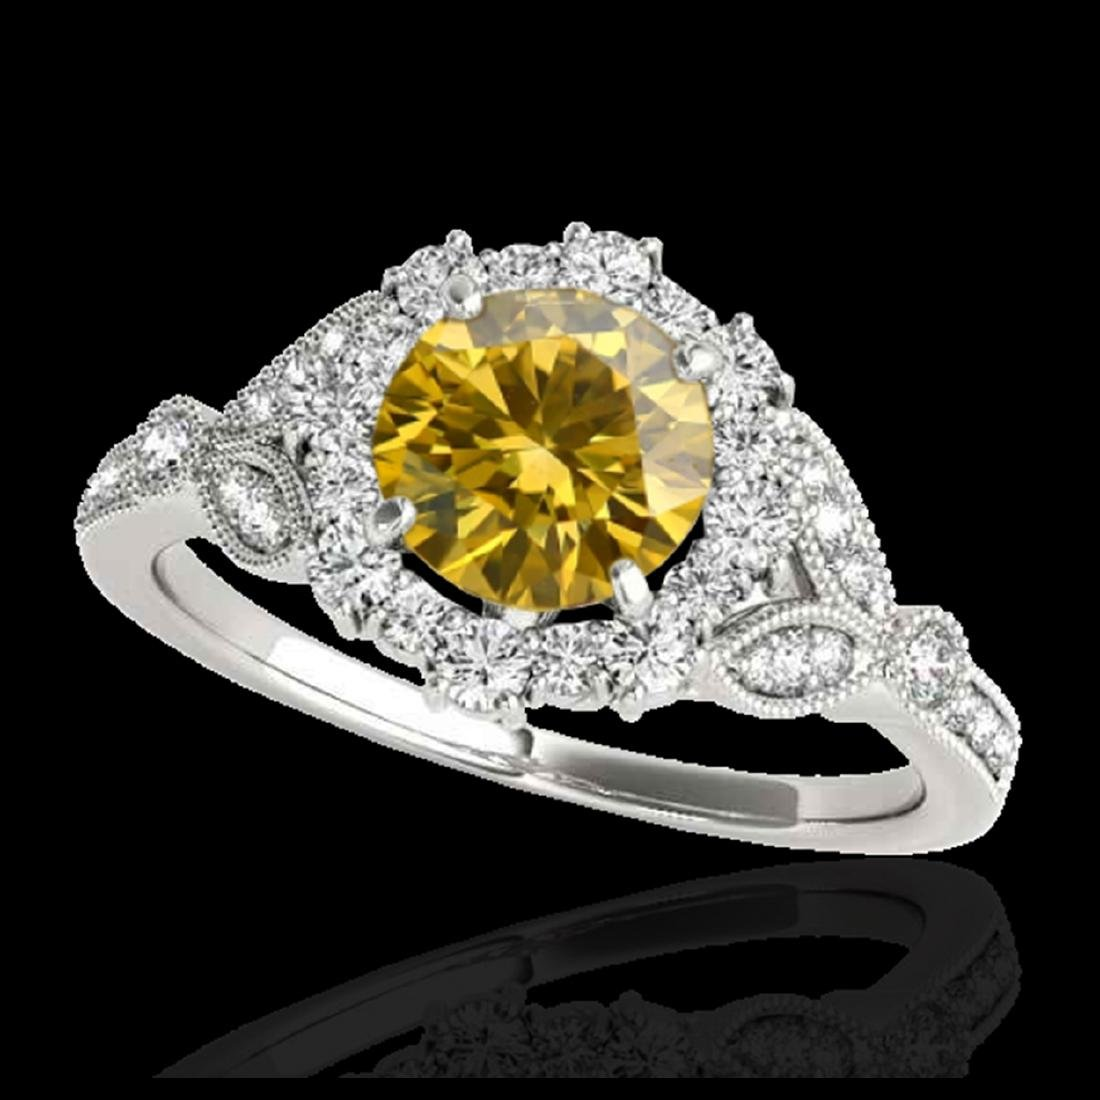 1.5 ctw SI/I Fancy Intense Yellow Diamond Ring 10K